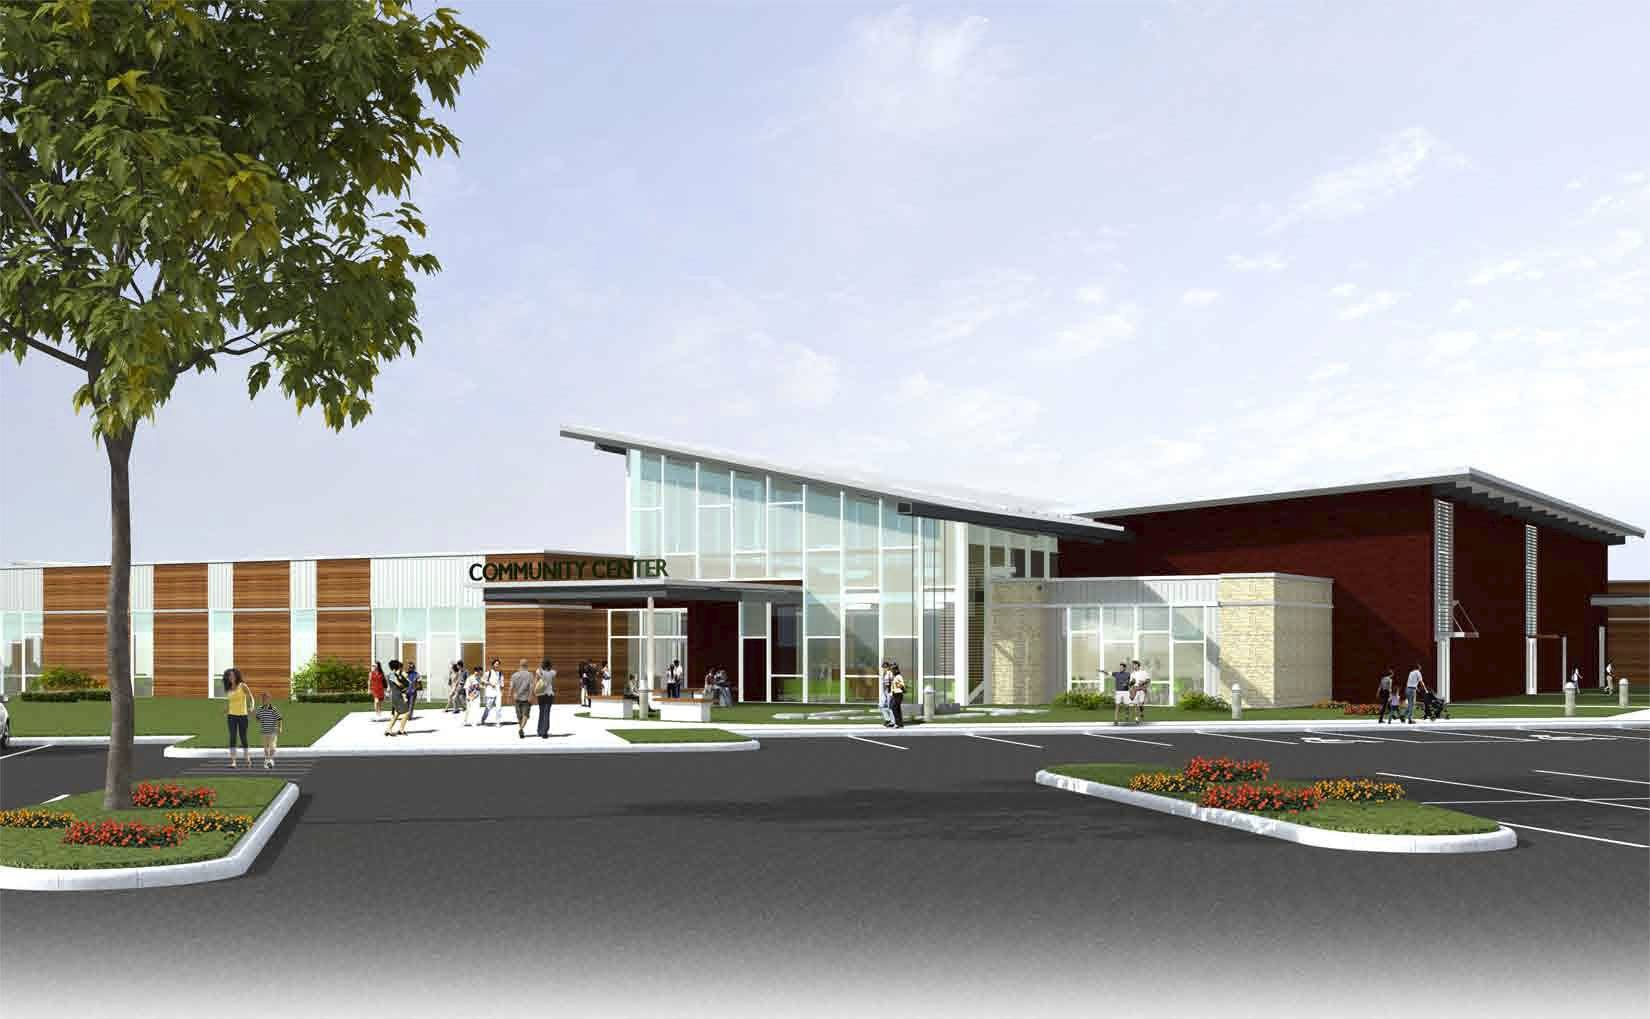 The Wheaton City Council approved a special use permit Monday that allows the DuPage County Health Department to move forward with the construction of a new 33,000-square-foot community center that will house offices, a 24-hour care center and the headquarters for the National Alliance on Mental Illinois of DuPage County.